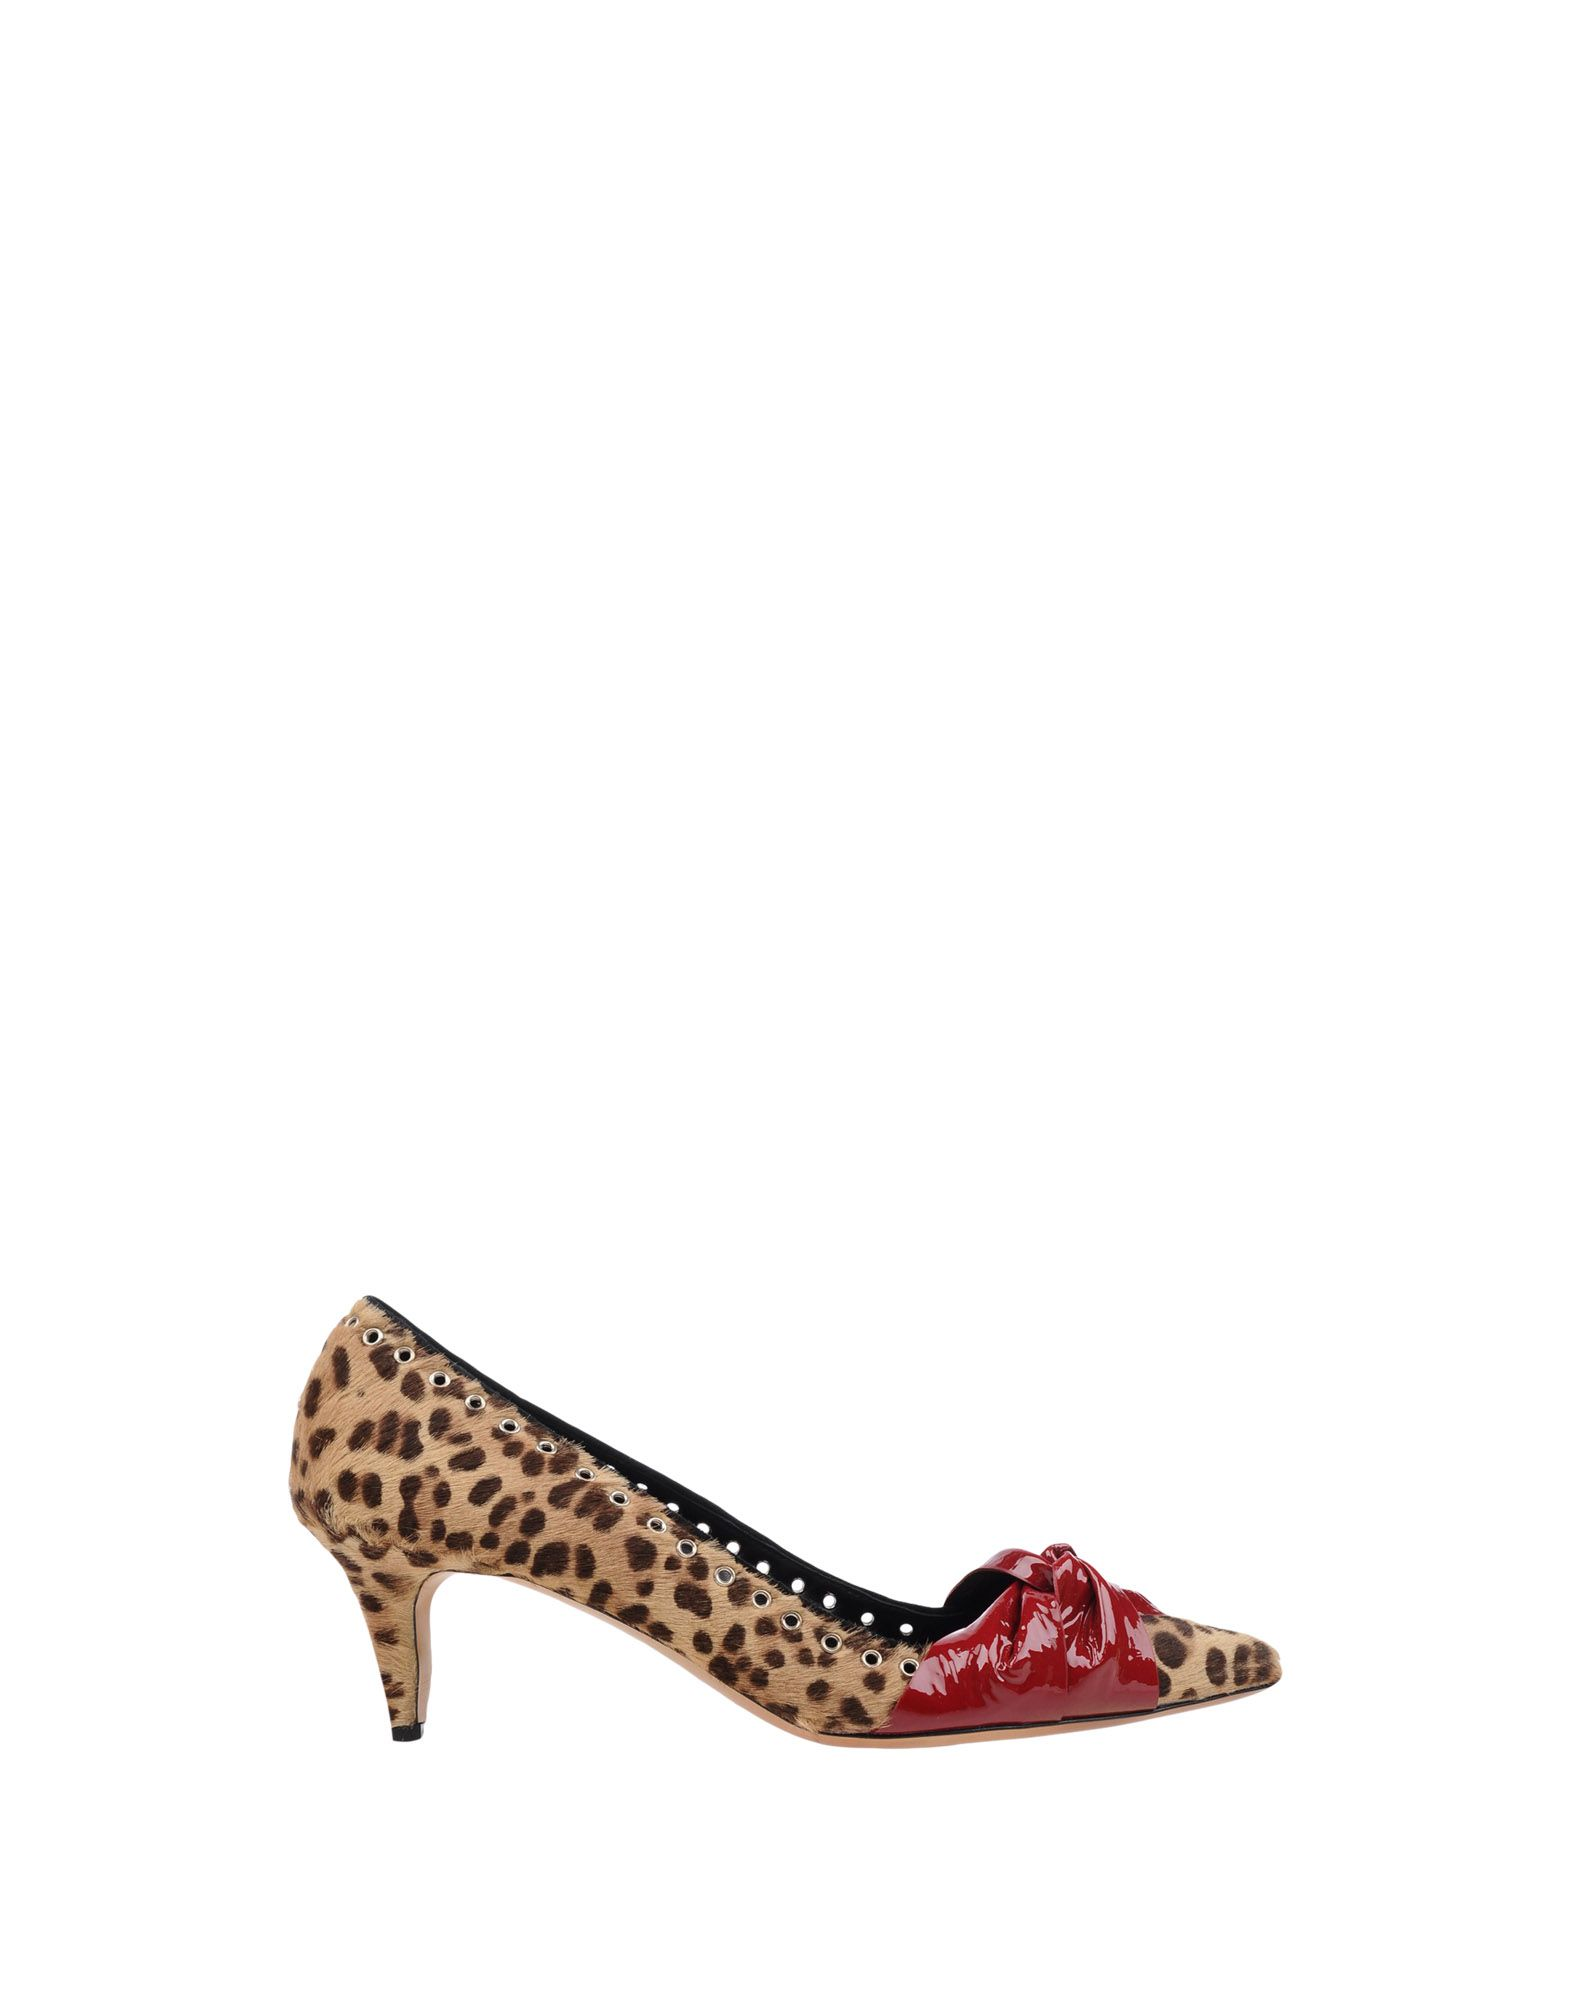 Stilvolle billige Schuhe Isabel Marant Pumps Damen  11365786PD